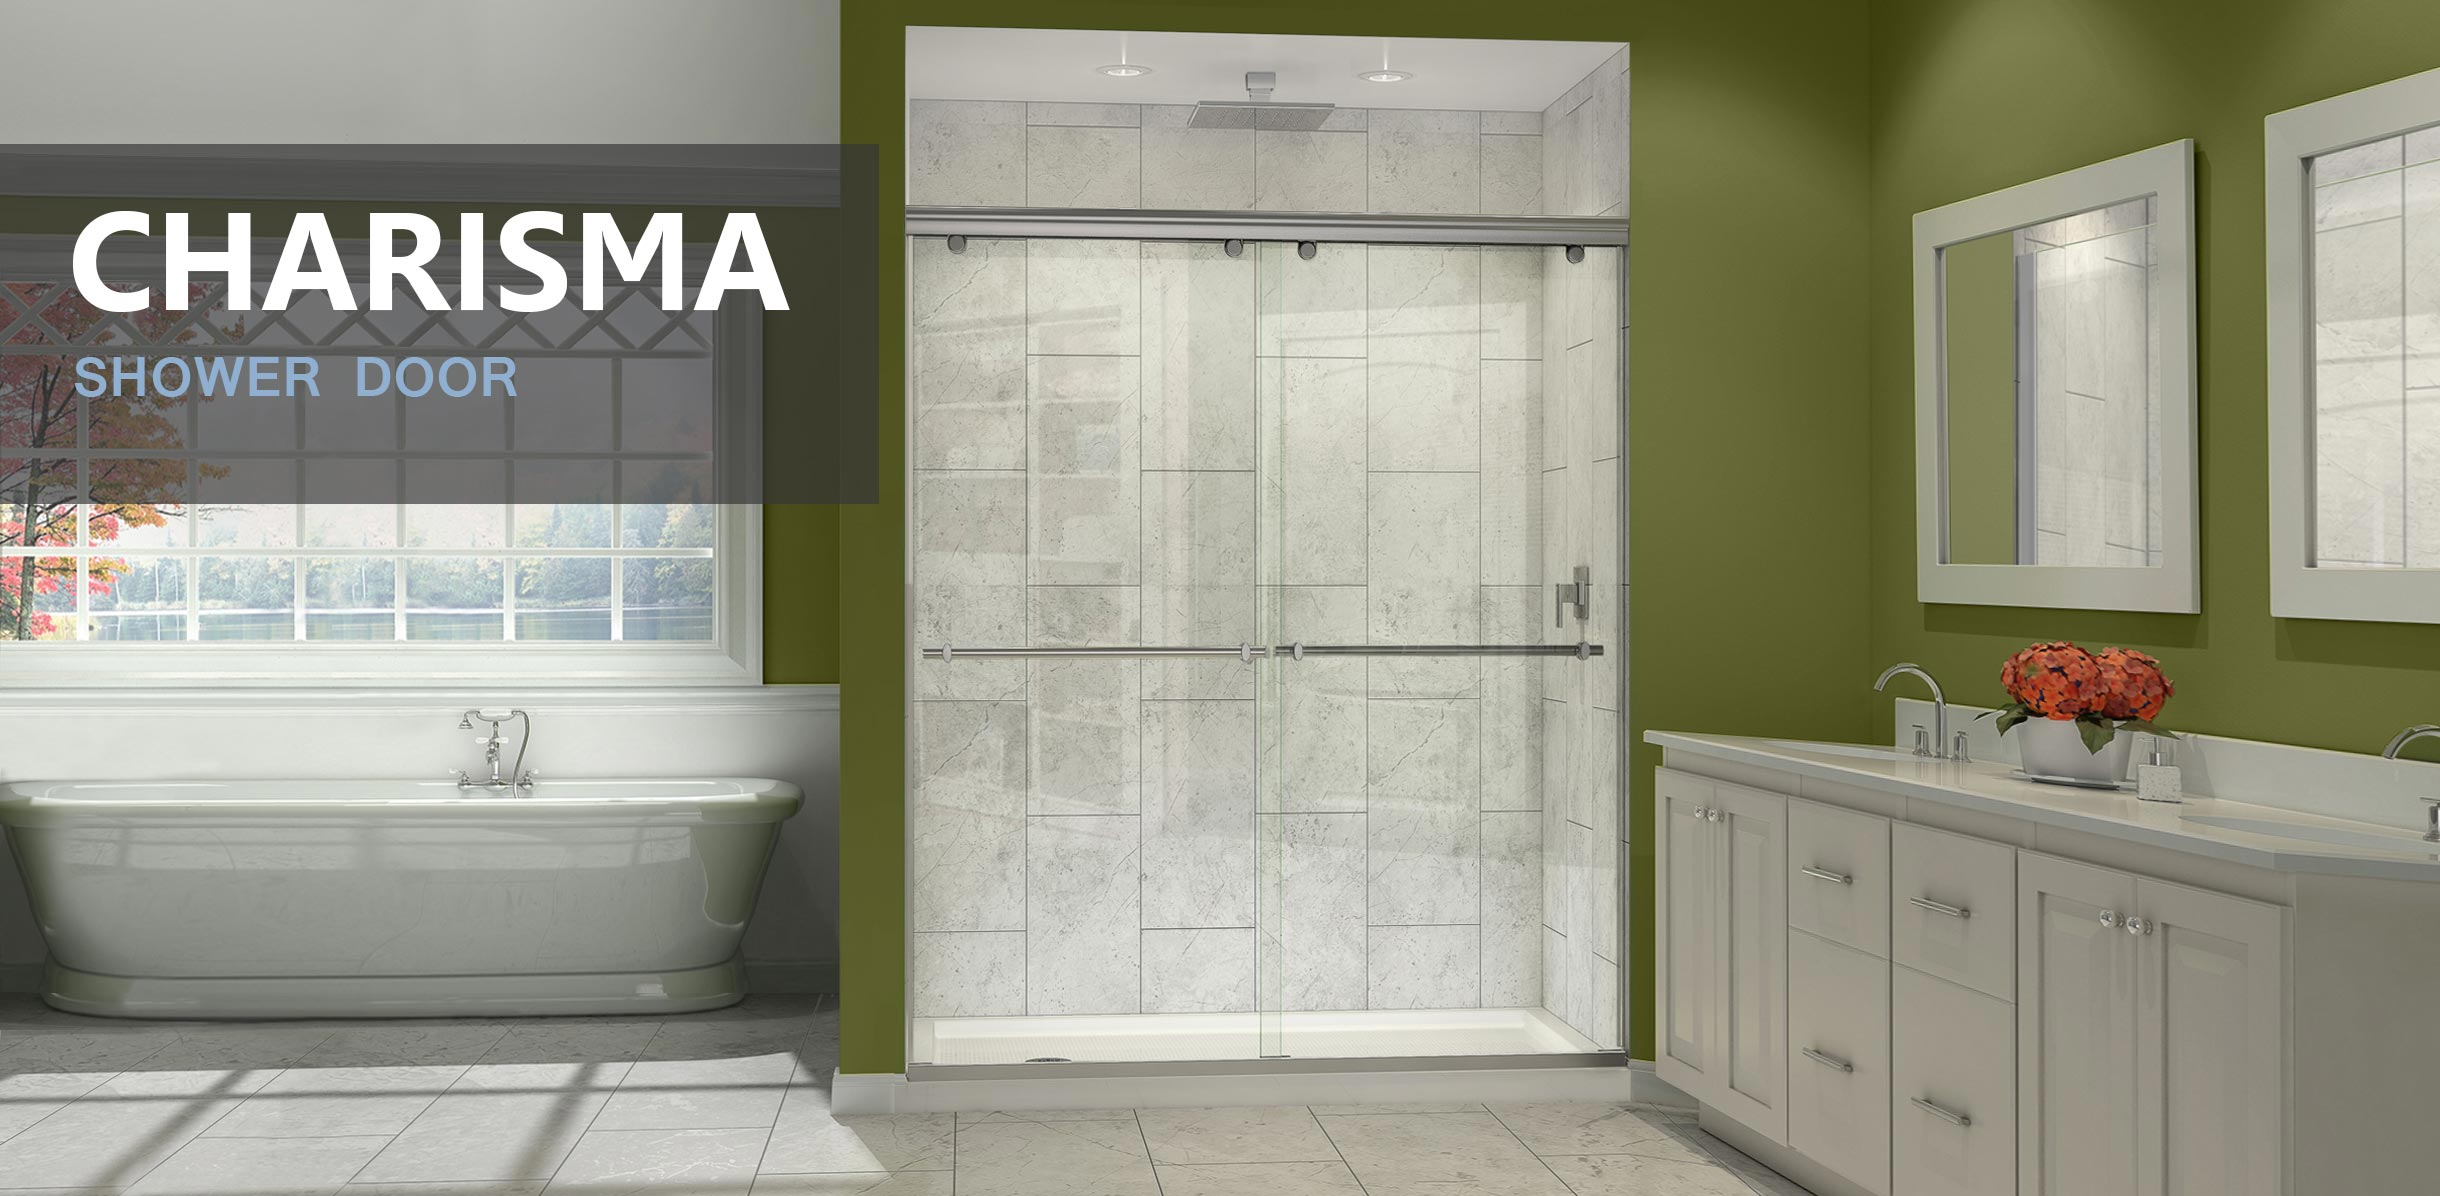 Shower door dreamline bathroom shower doors frameless glass shower - Shower Doors And Sliding Glass Doors Dreamline Showers